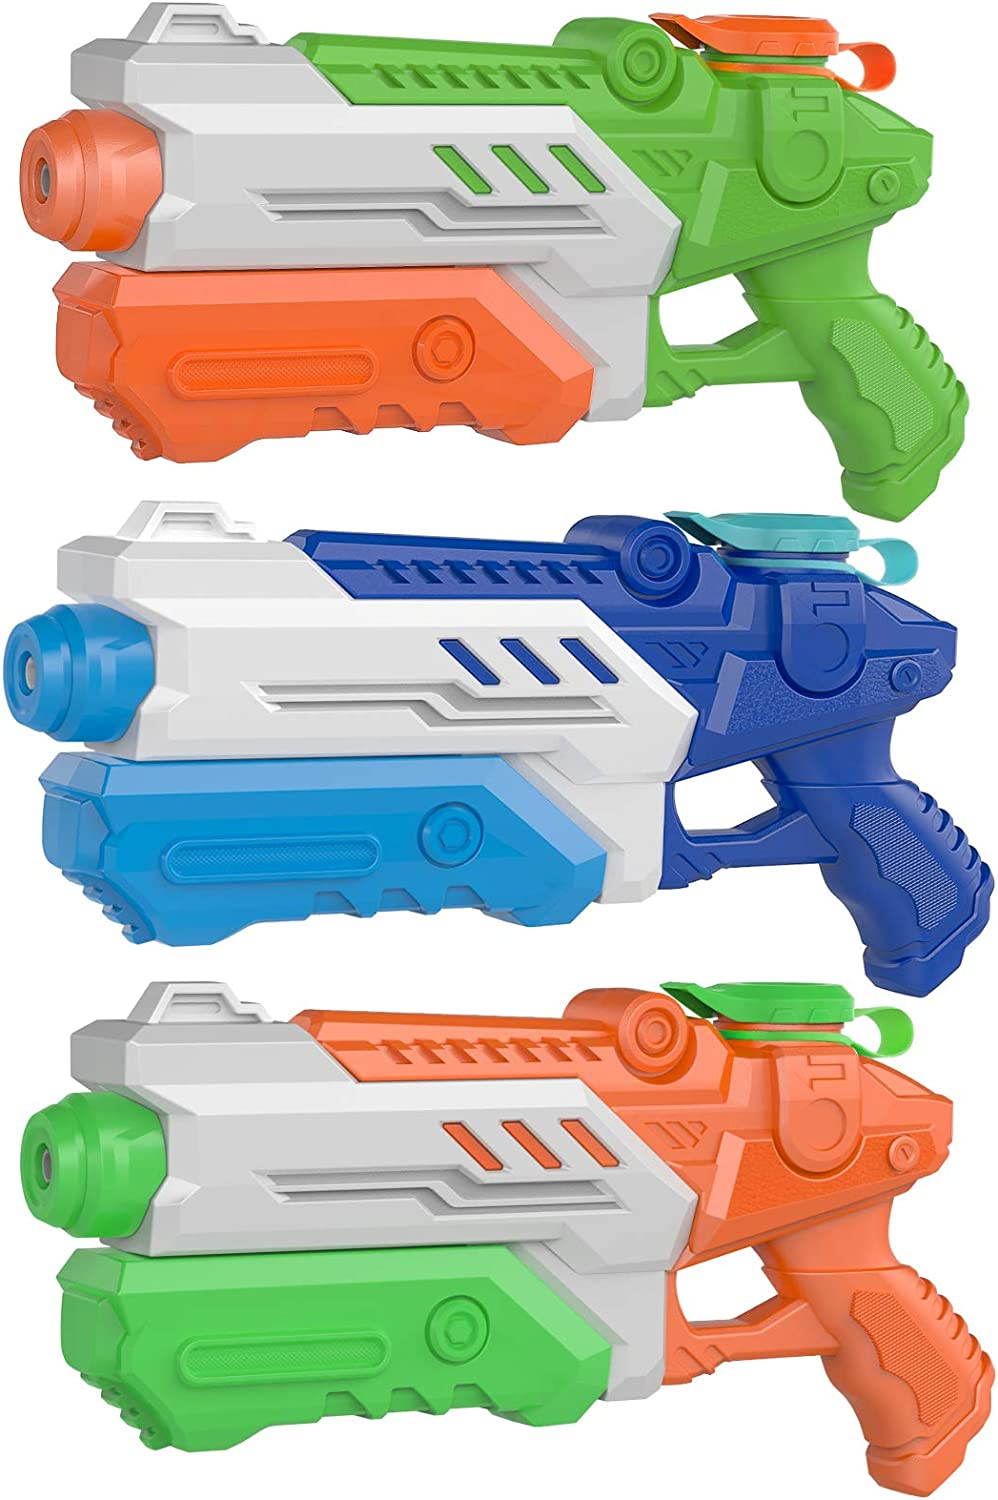 3 Packs Water Guns for Kids Adults Summer Super Fighting Soaker Blaster Swimming Pool Beach Sand Outdoor Play Squirt Water Toys Party Favors: Toys & Games